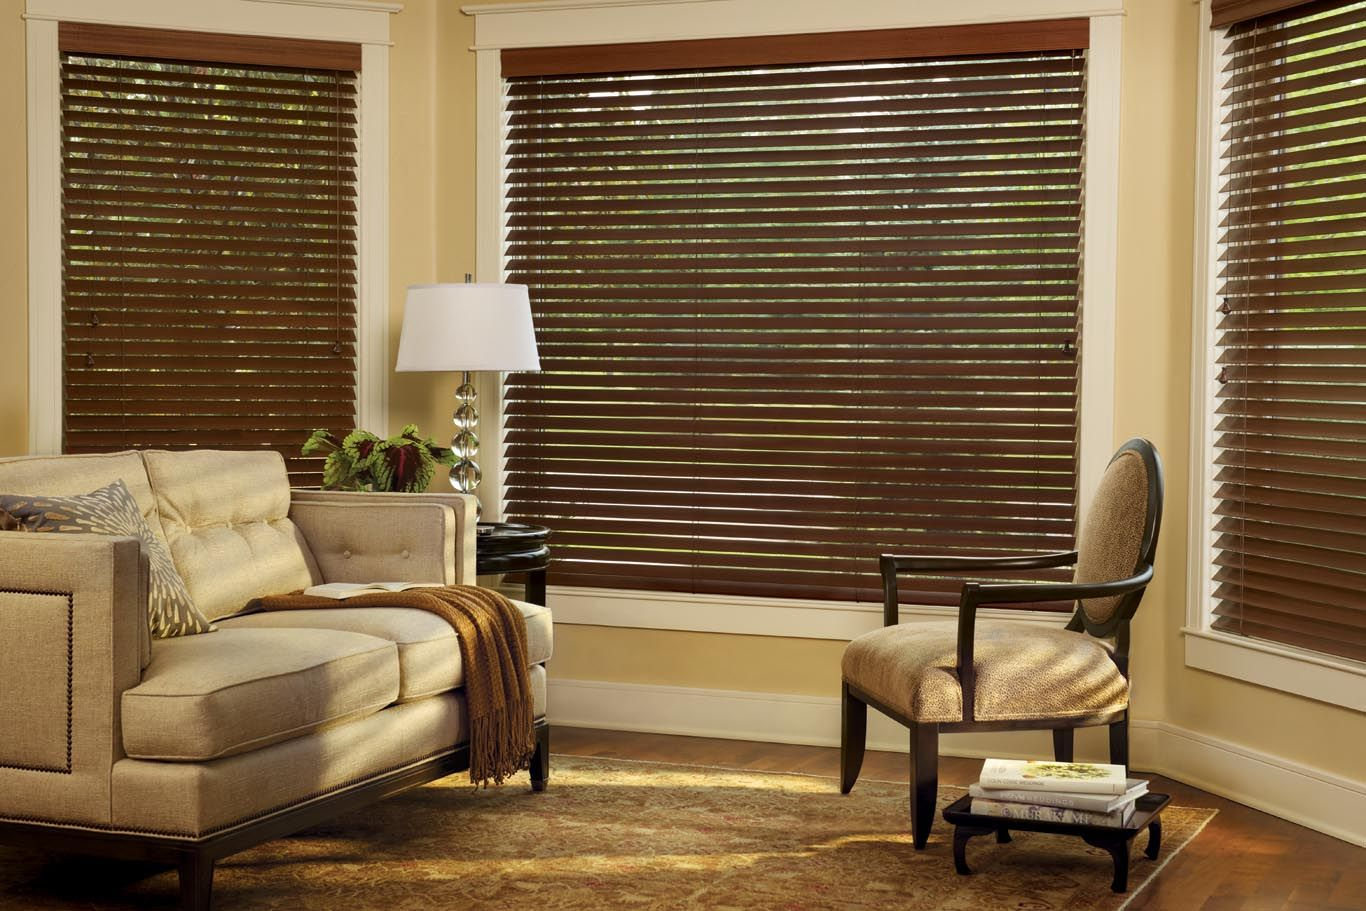 Living Room Window Blind Ideas Run The Expanse Of Styles From